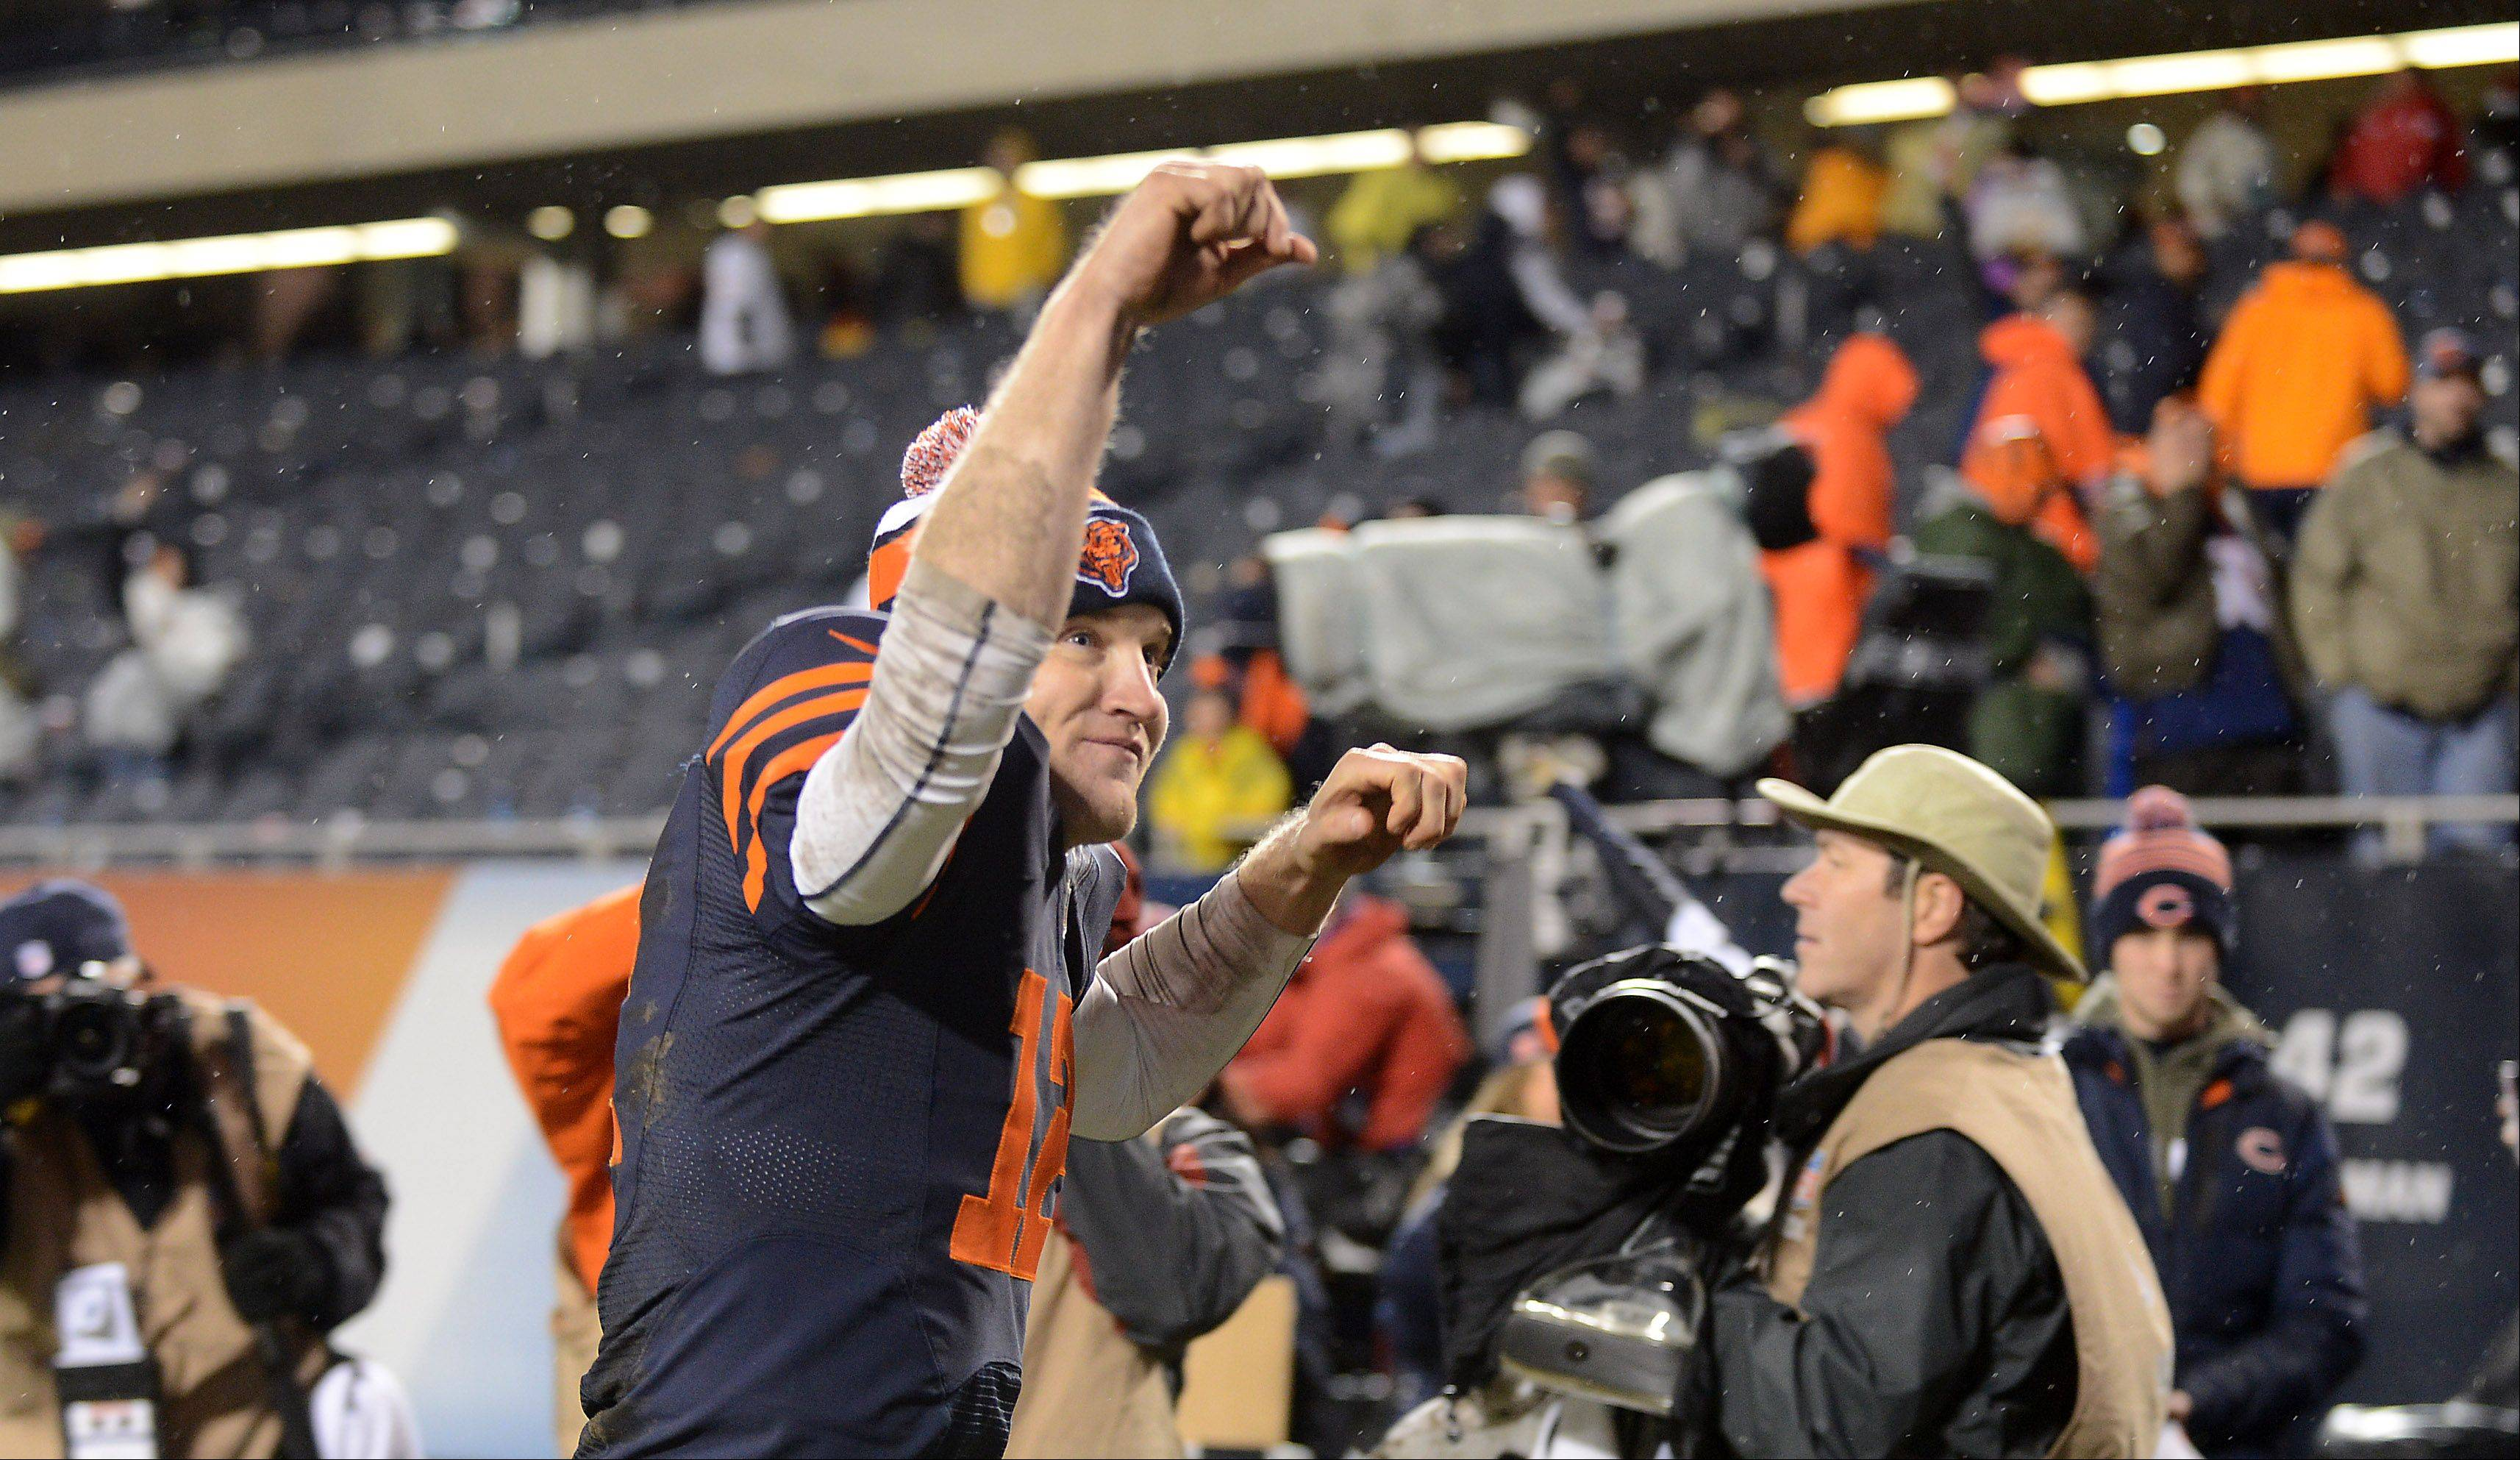 Chicago Bears quarterback Josh McCown (12) salutes the fans as he leaves the field following Sunday's game in Chicago.